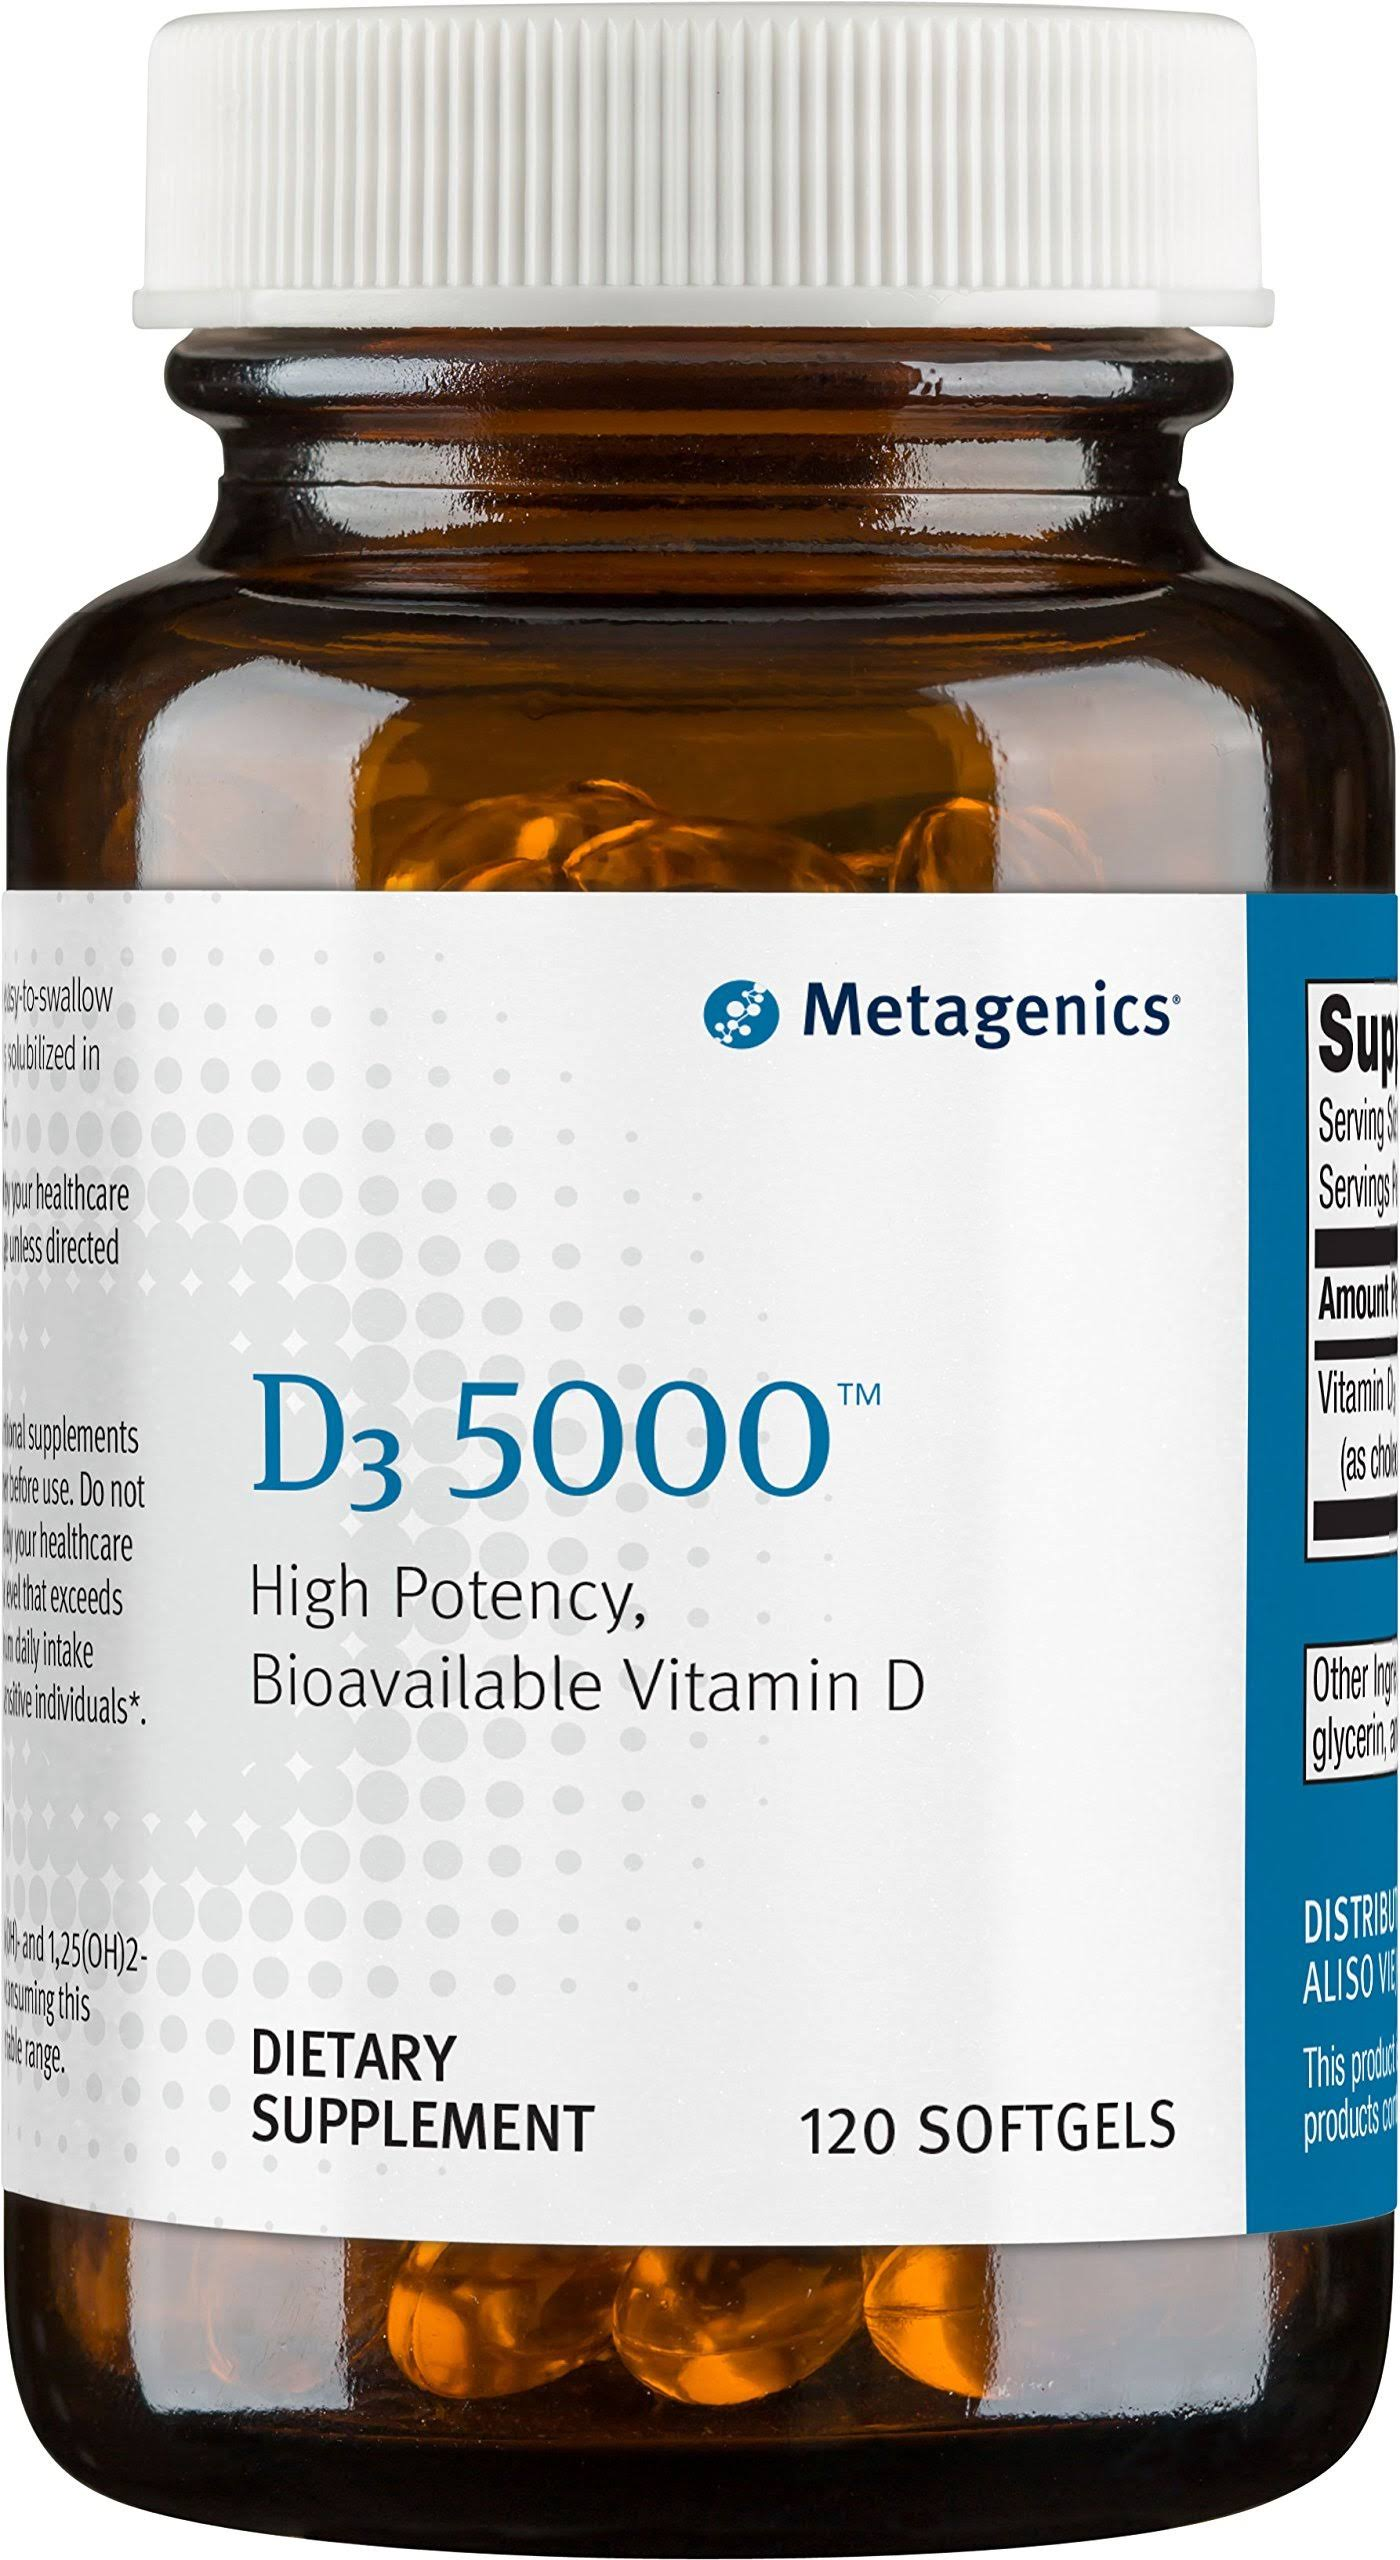 Metagenics D3 Bioavailable Vitamin D High Potency Supplemeant - 120 Count